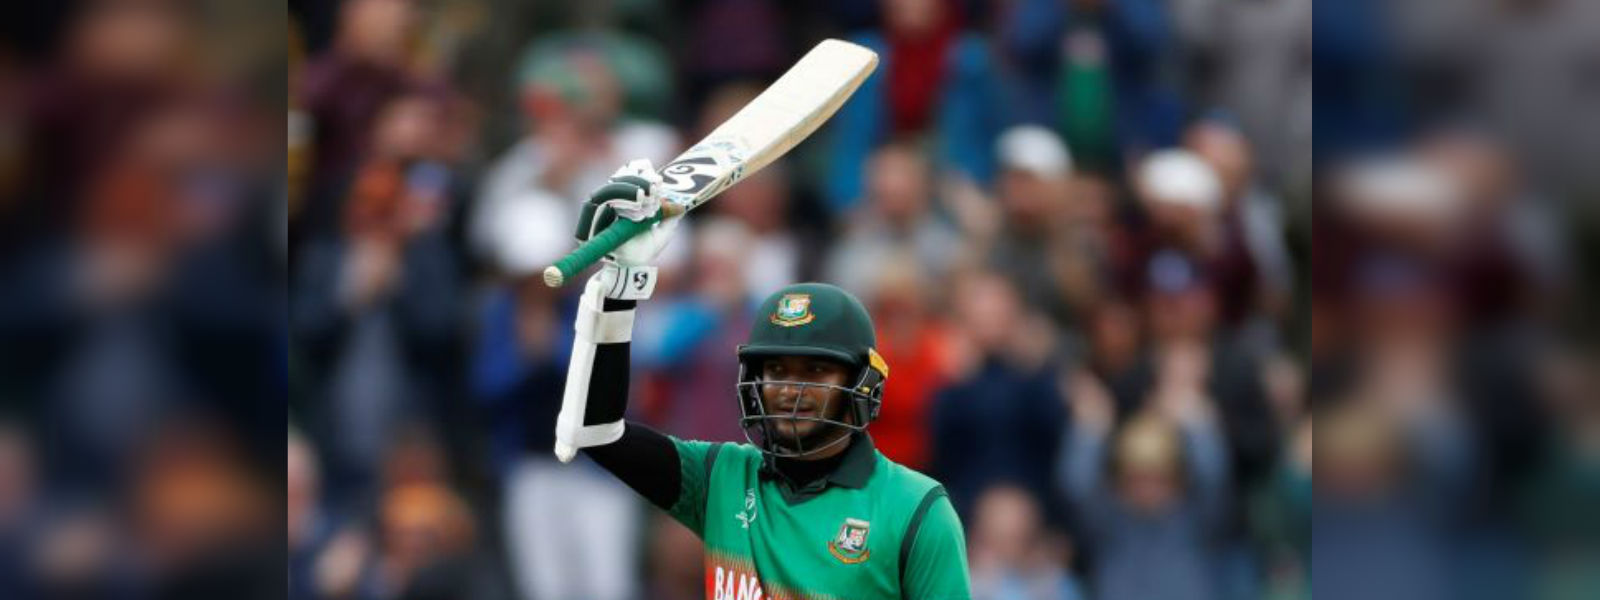 Australia hope to dismiss red-hot Shakib early, but Bangladesh confident going into showdown